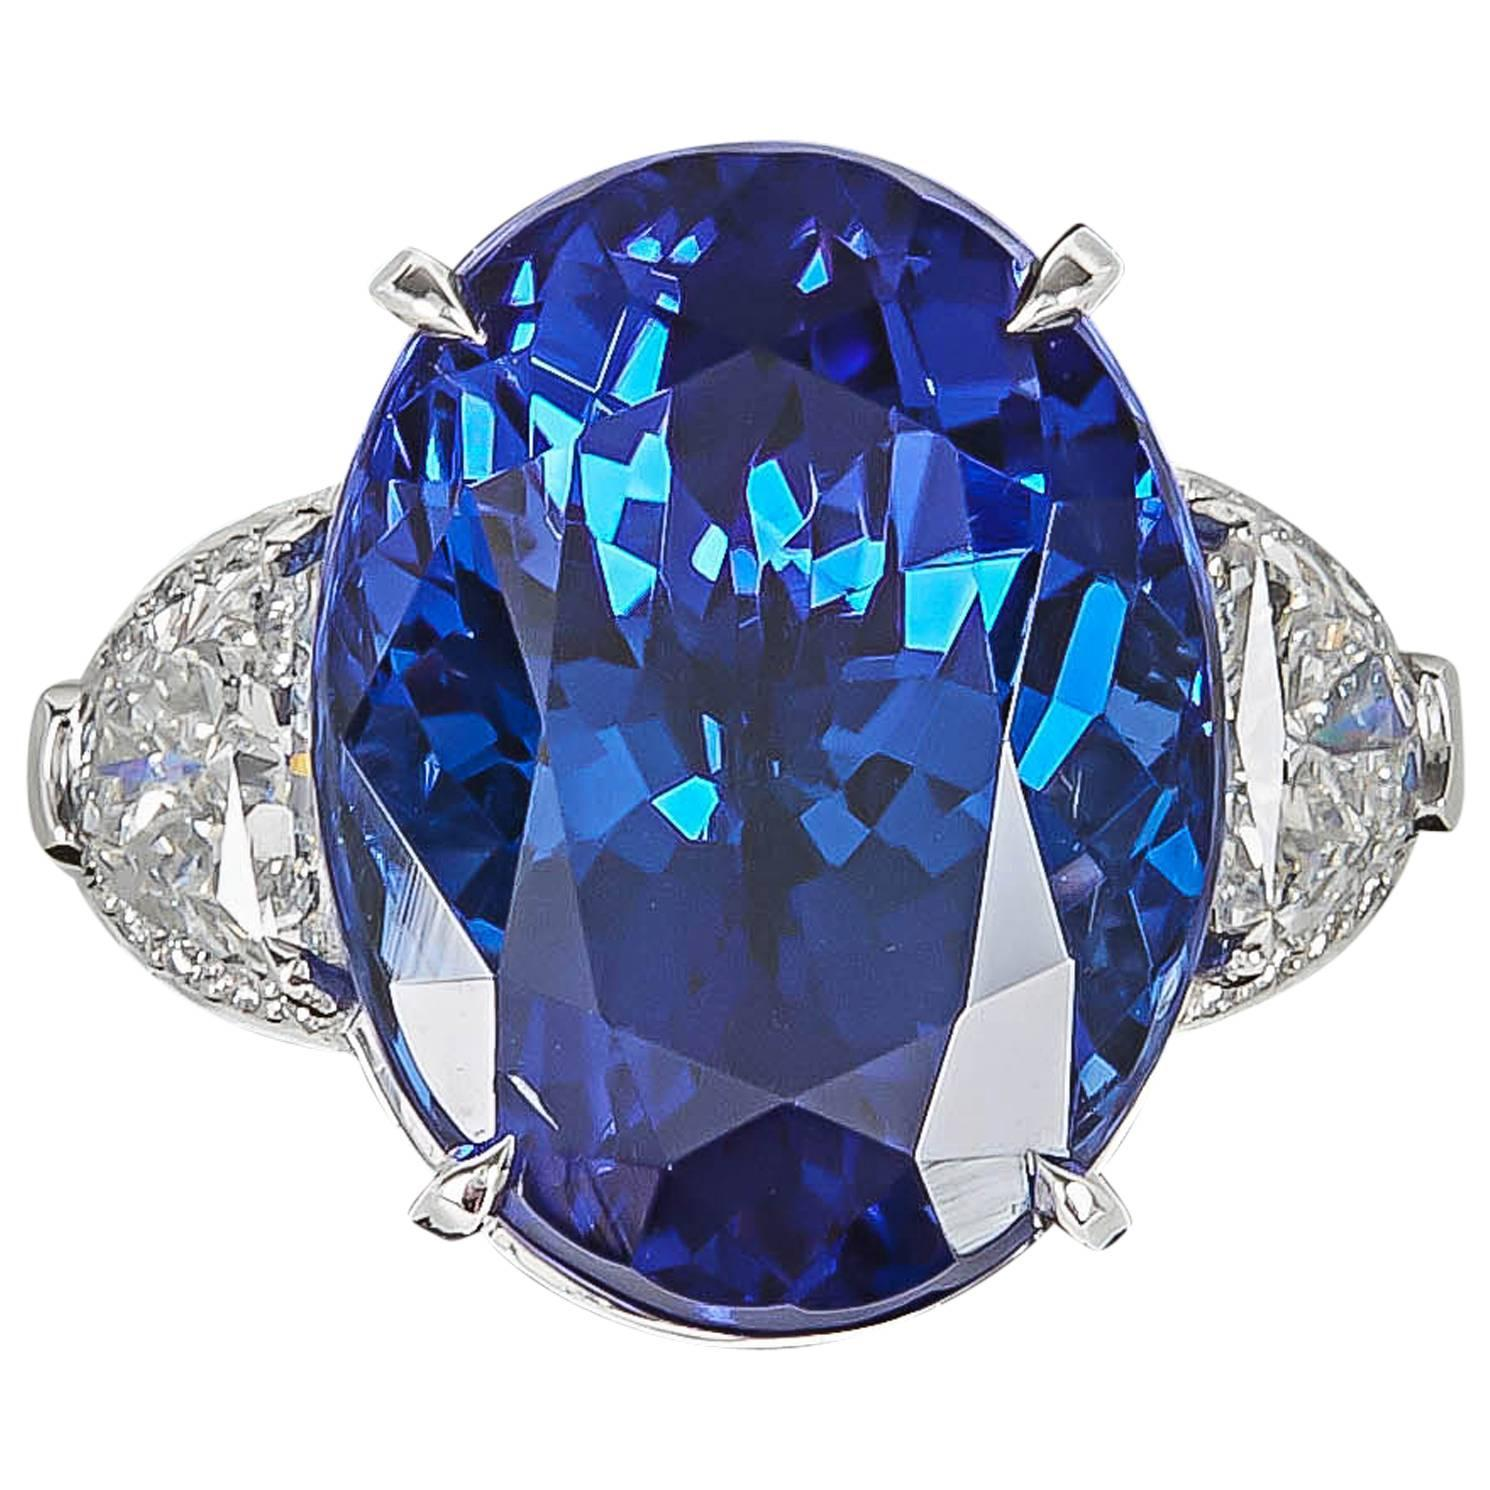 rings lichfield diamond modern classic styles royal cut ring engagement sapphire blue the london